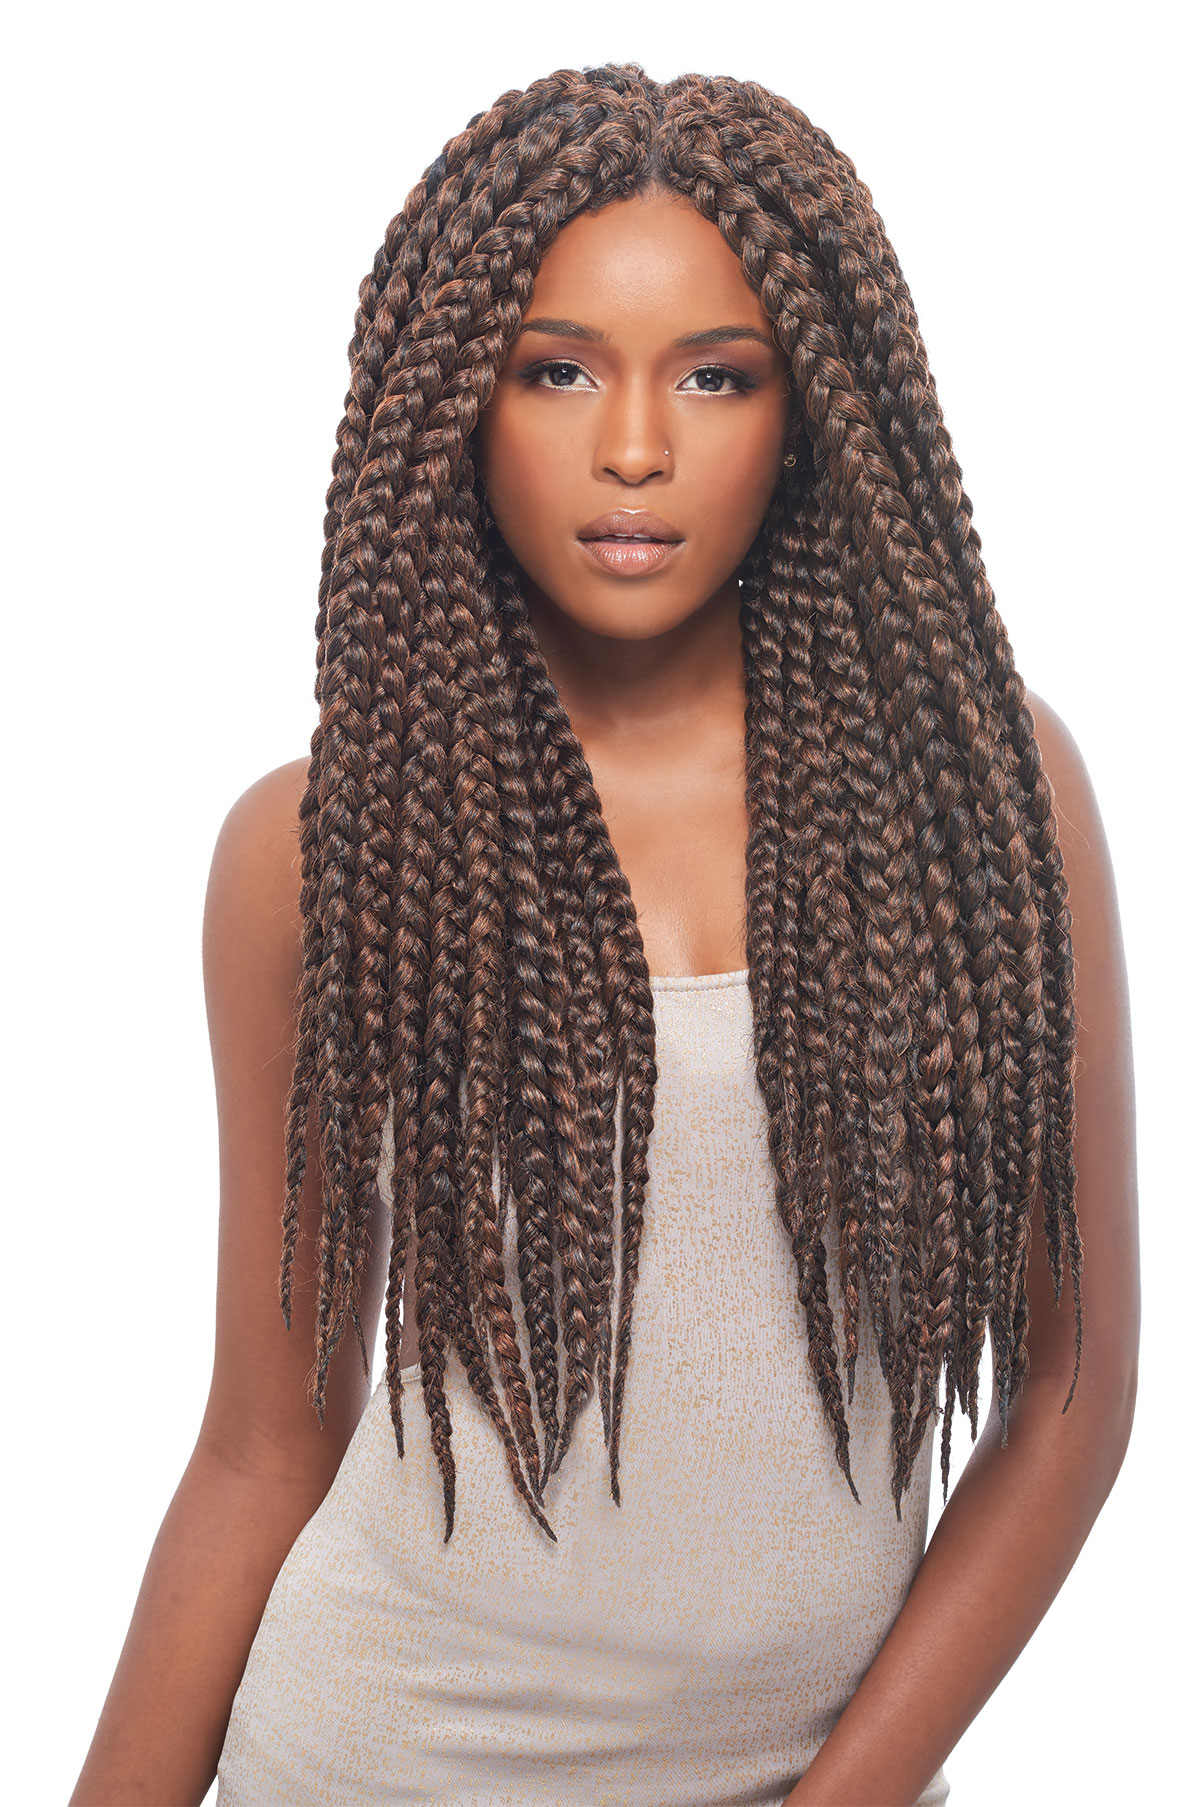 3s Havana Mambo Box Braid 24 Janet Collection Synthetic Crochet